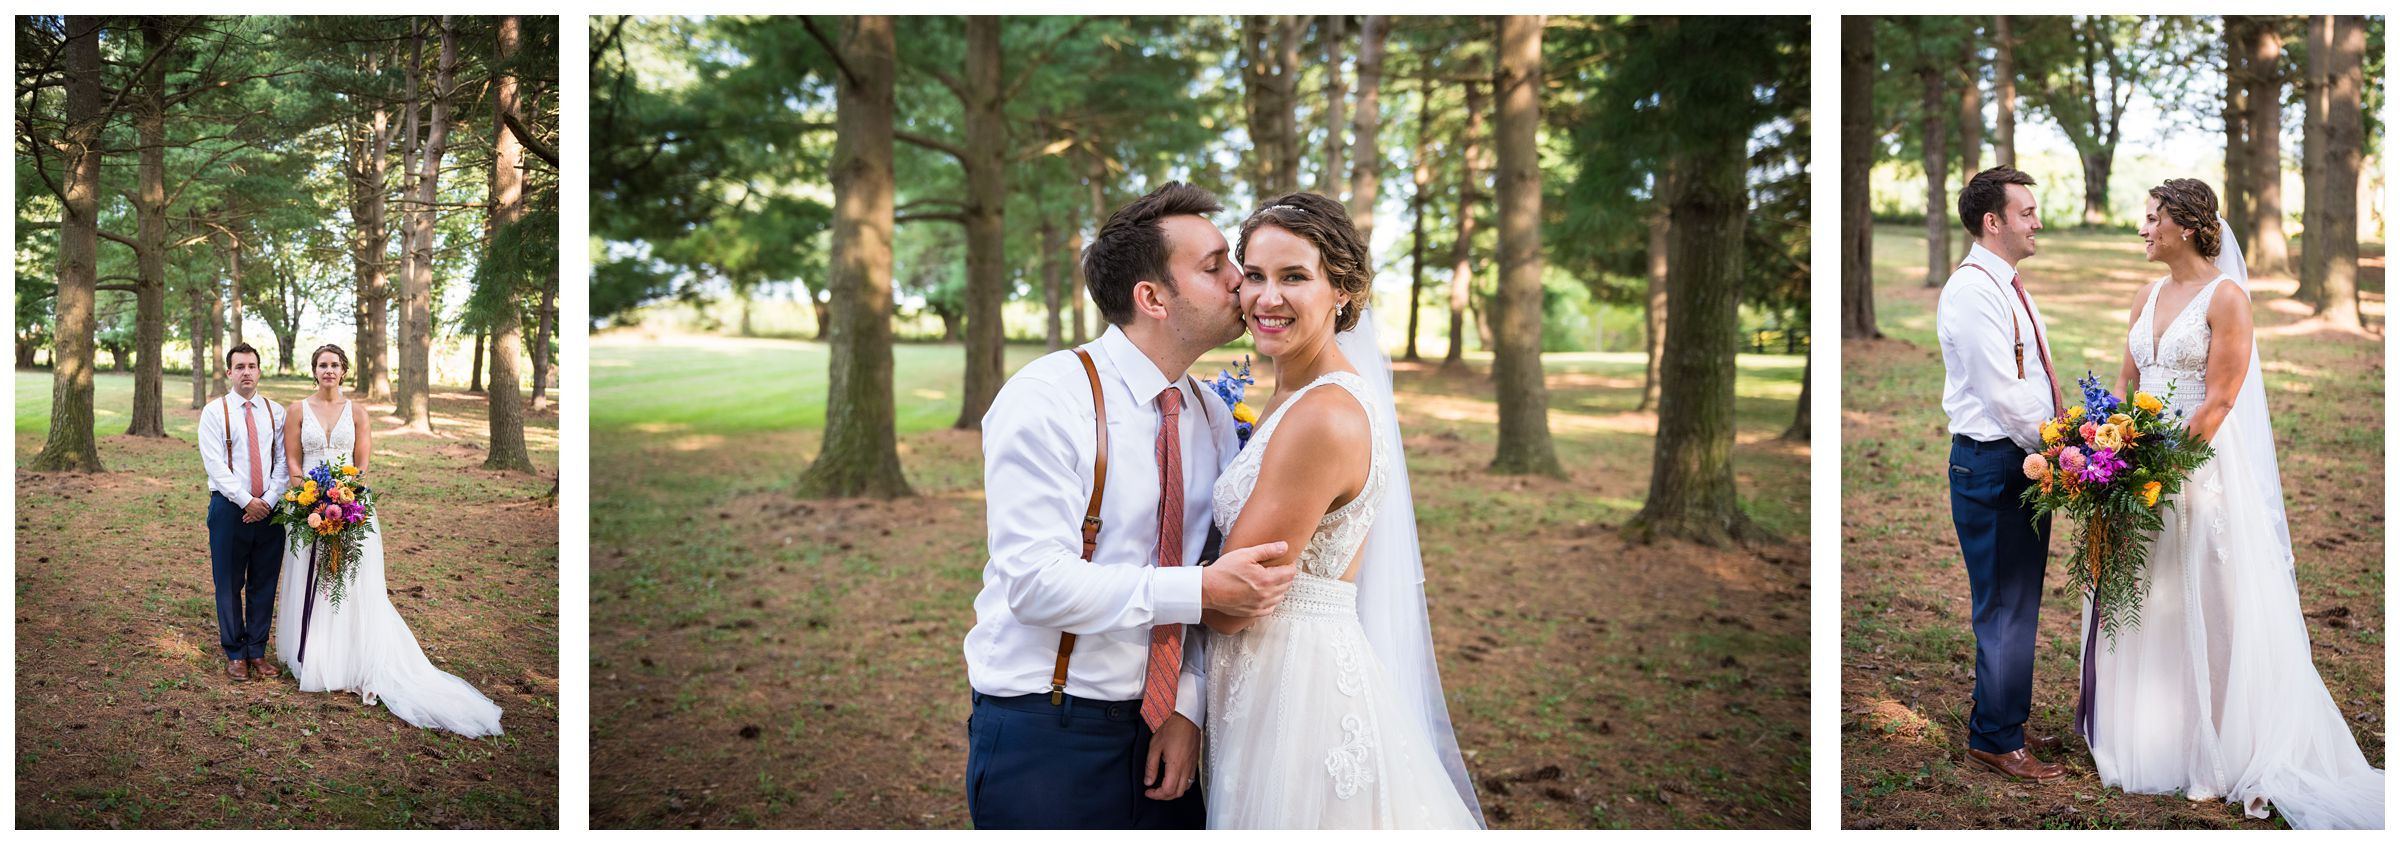 bride and groom wedding photos under pine tree forest during rustic Lancaster barn wedding